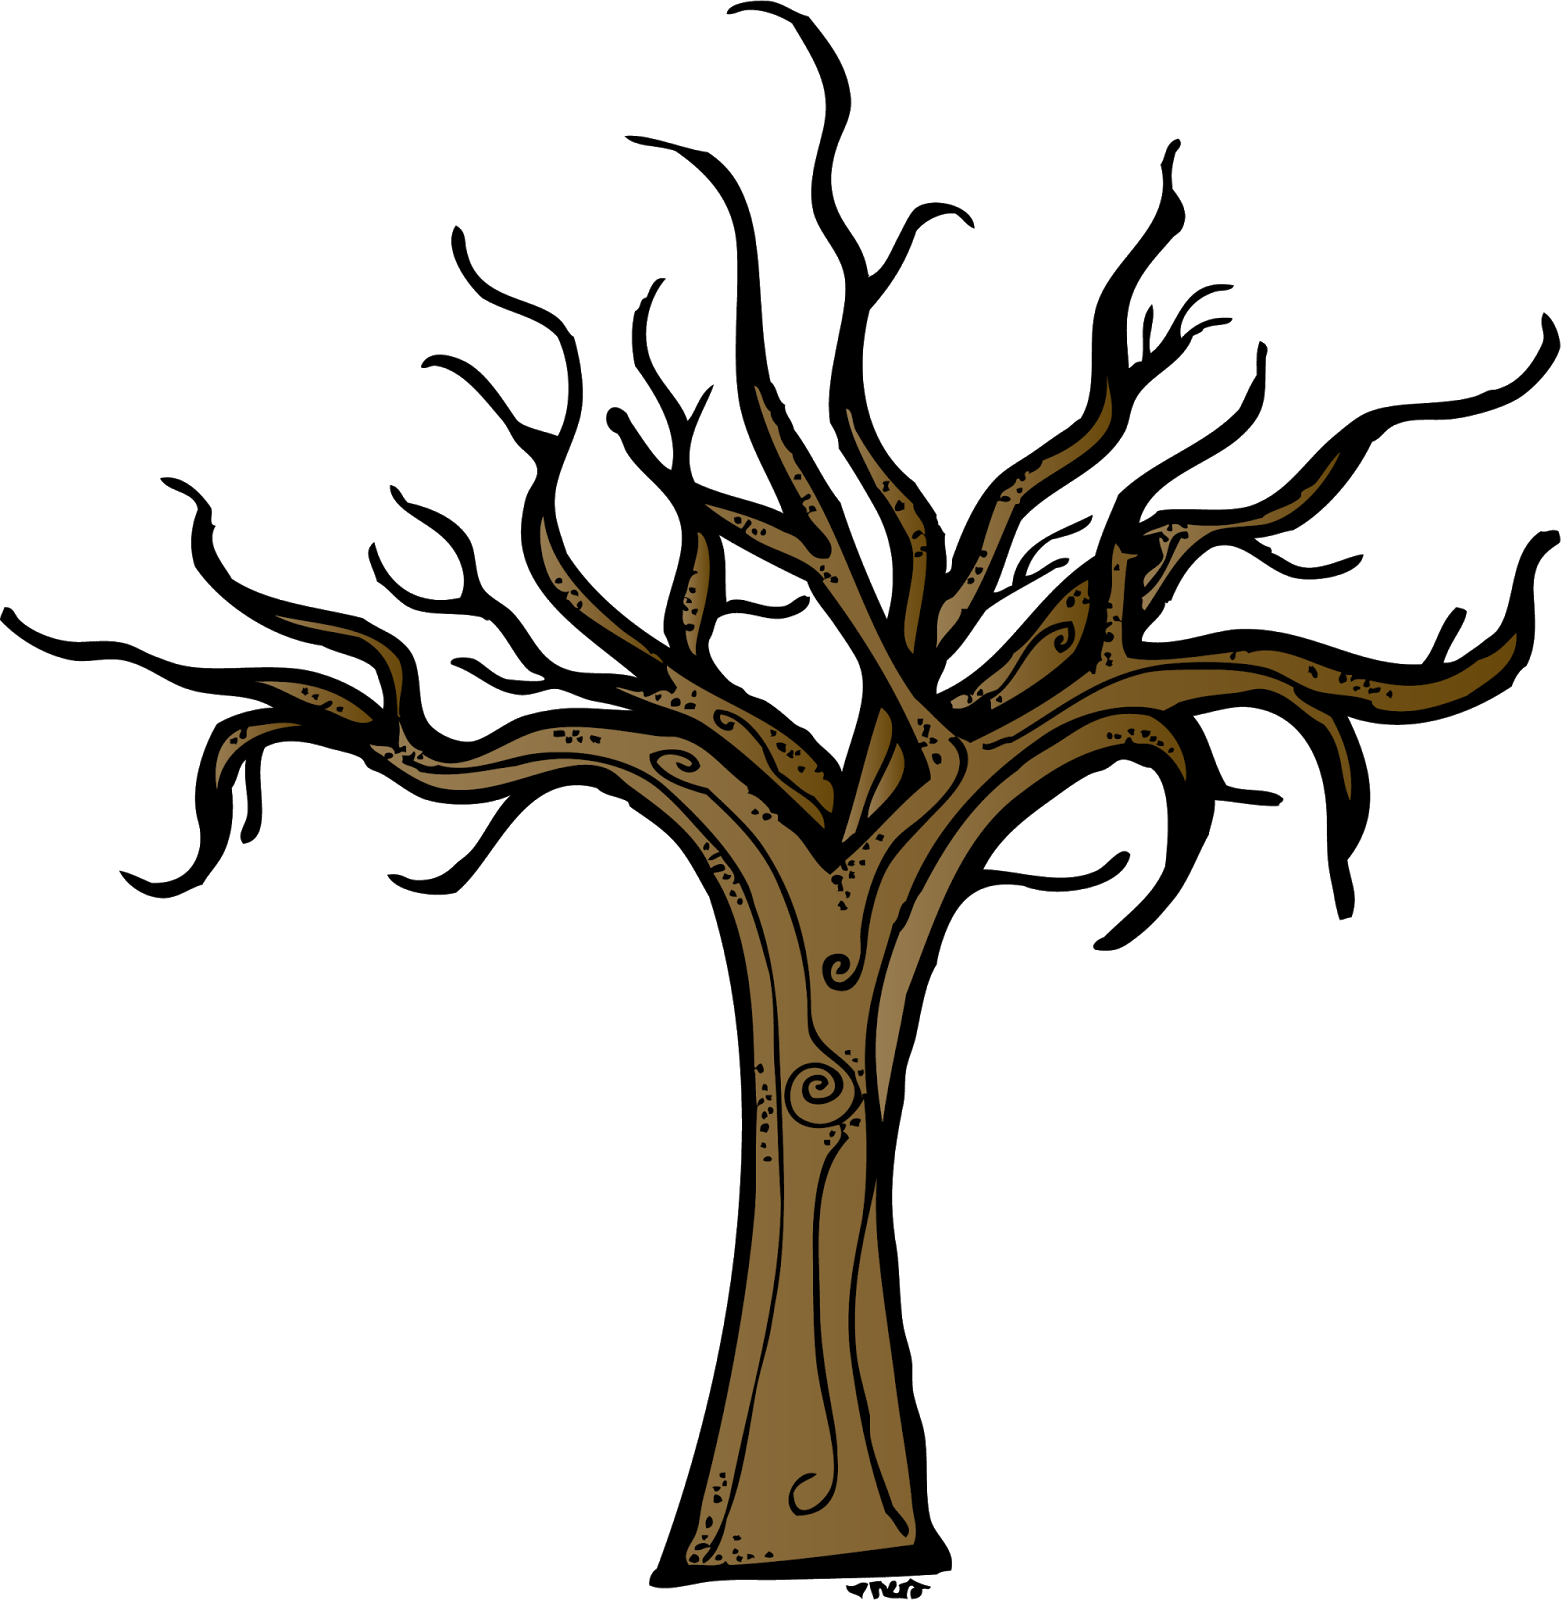 Dead forest silhouette at. Tree clipart october